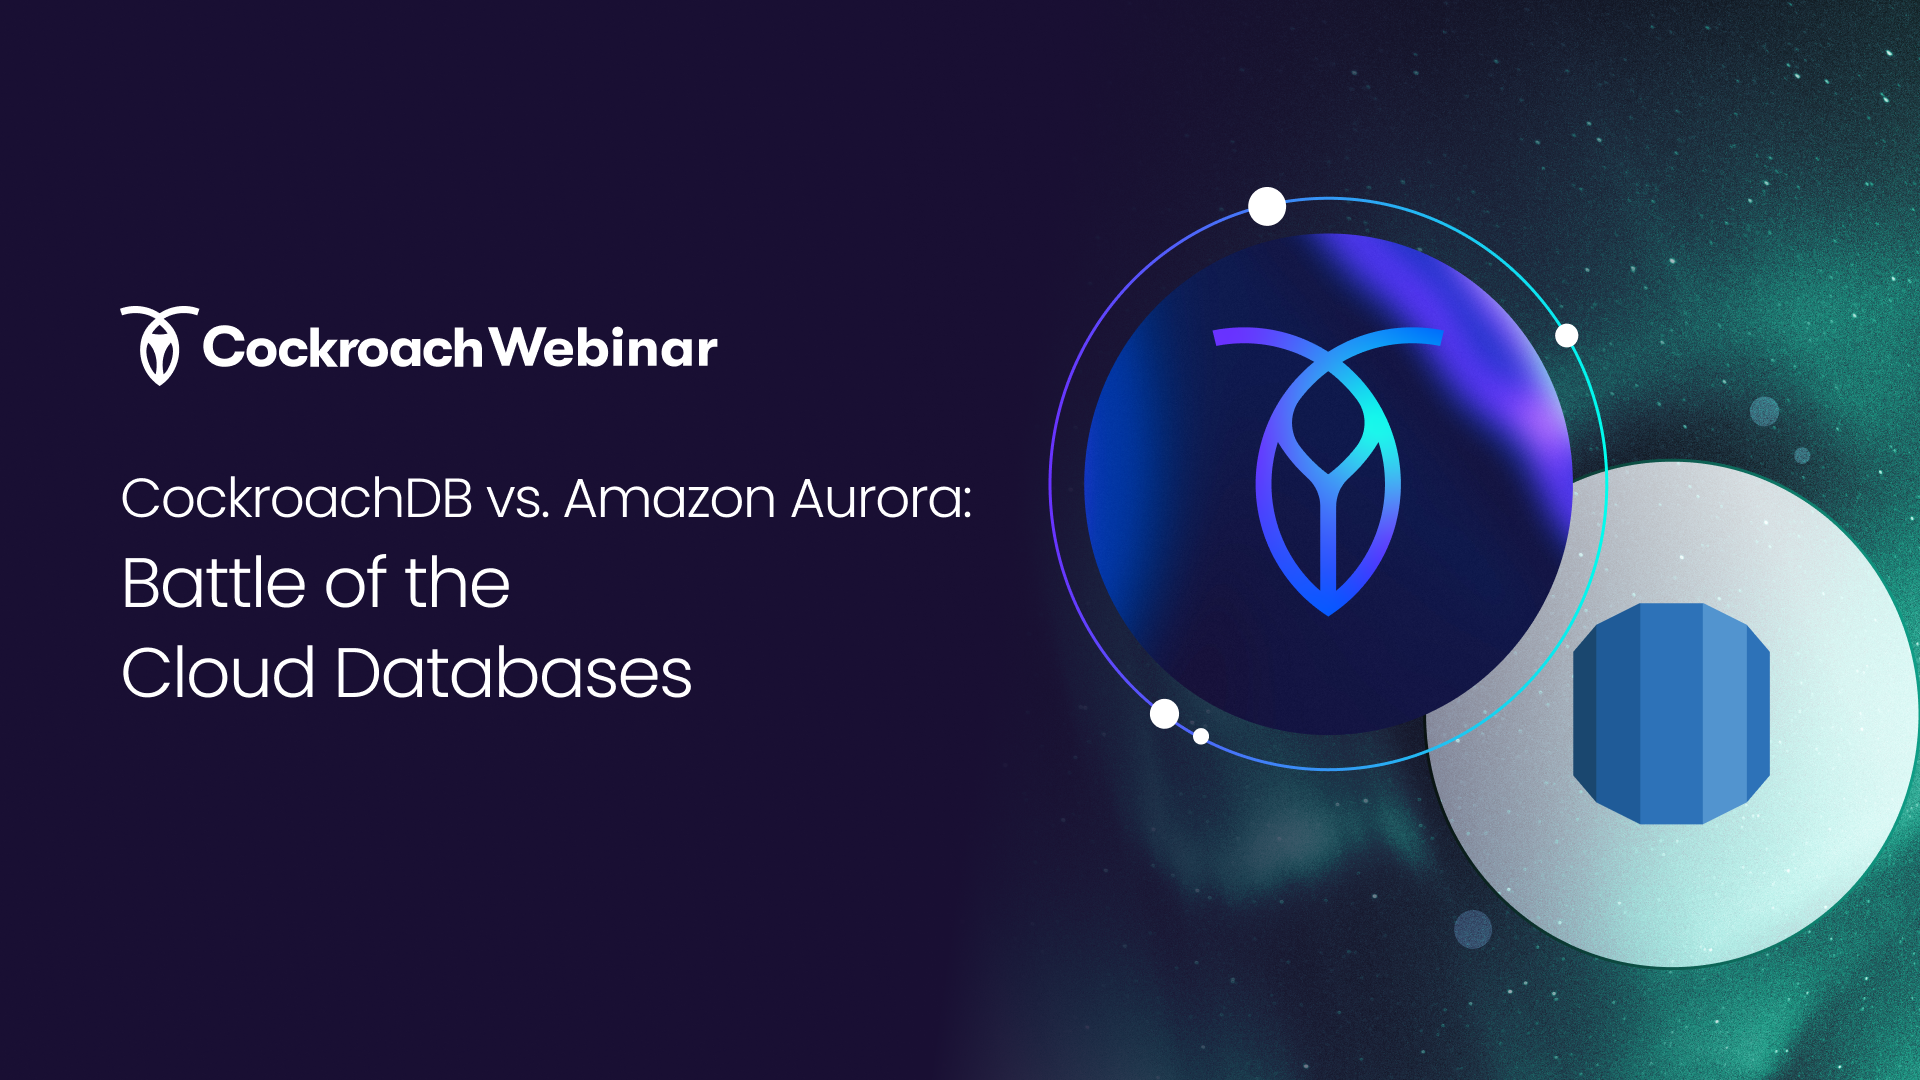 CockroachDB vs. Amazon Aurora: Battle of the Cloud Databases